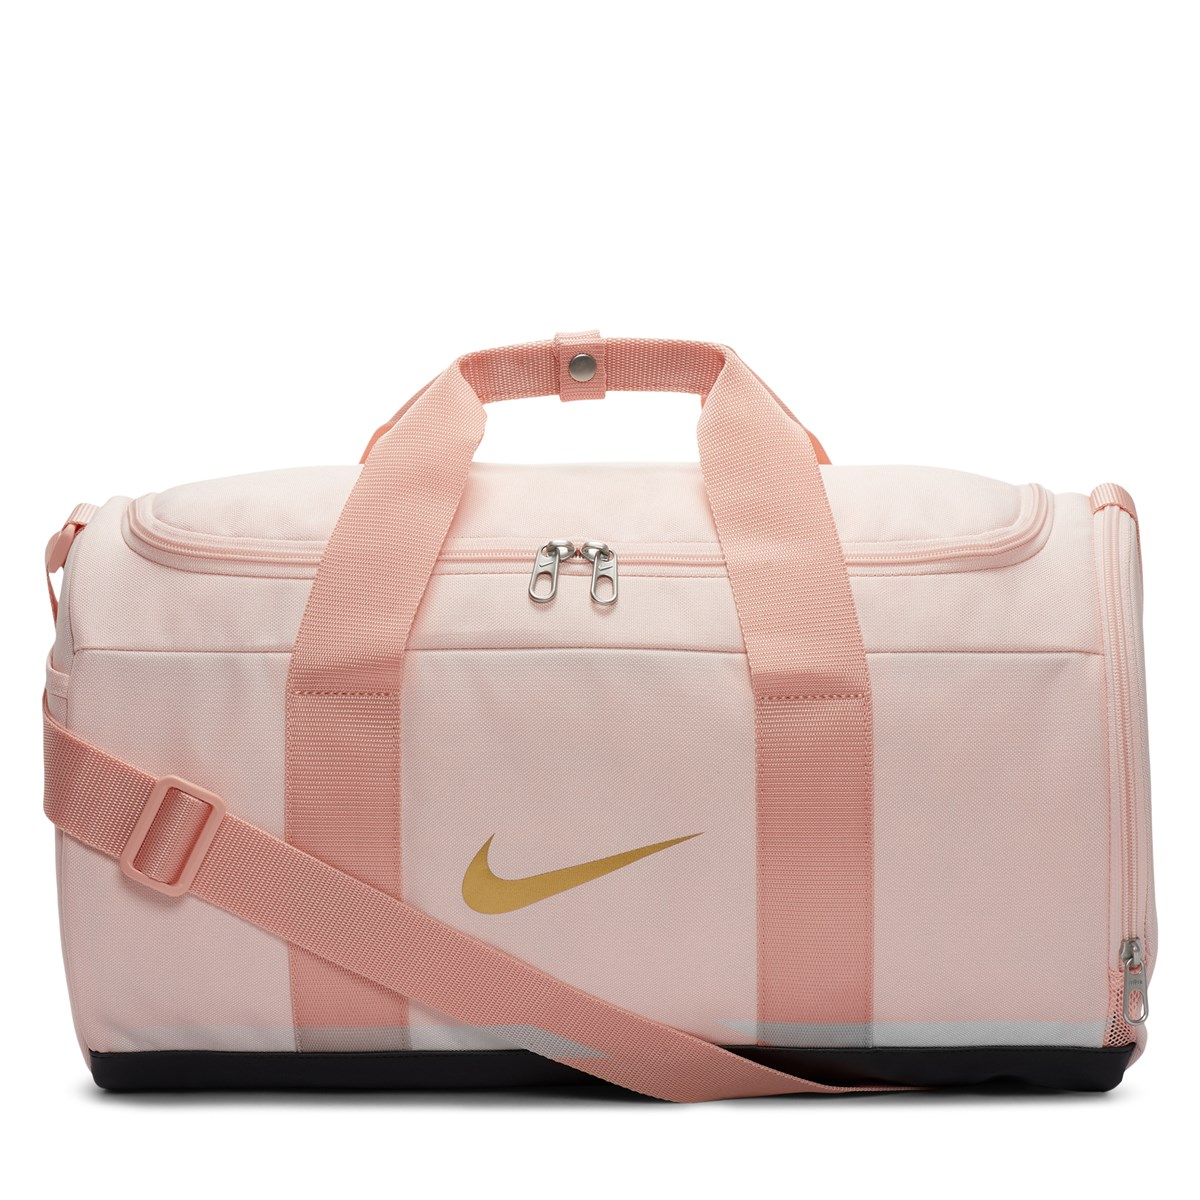 Team Duffel Bag in Pink